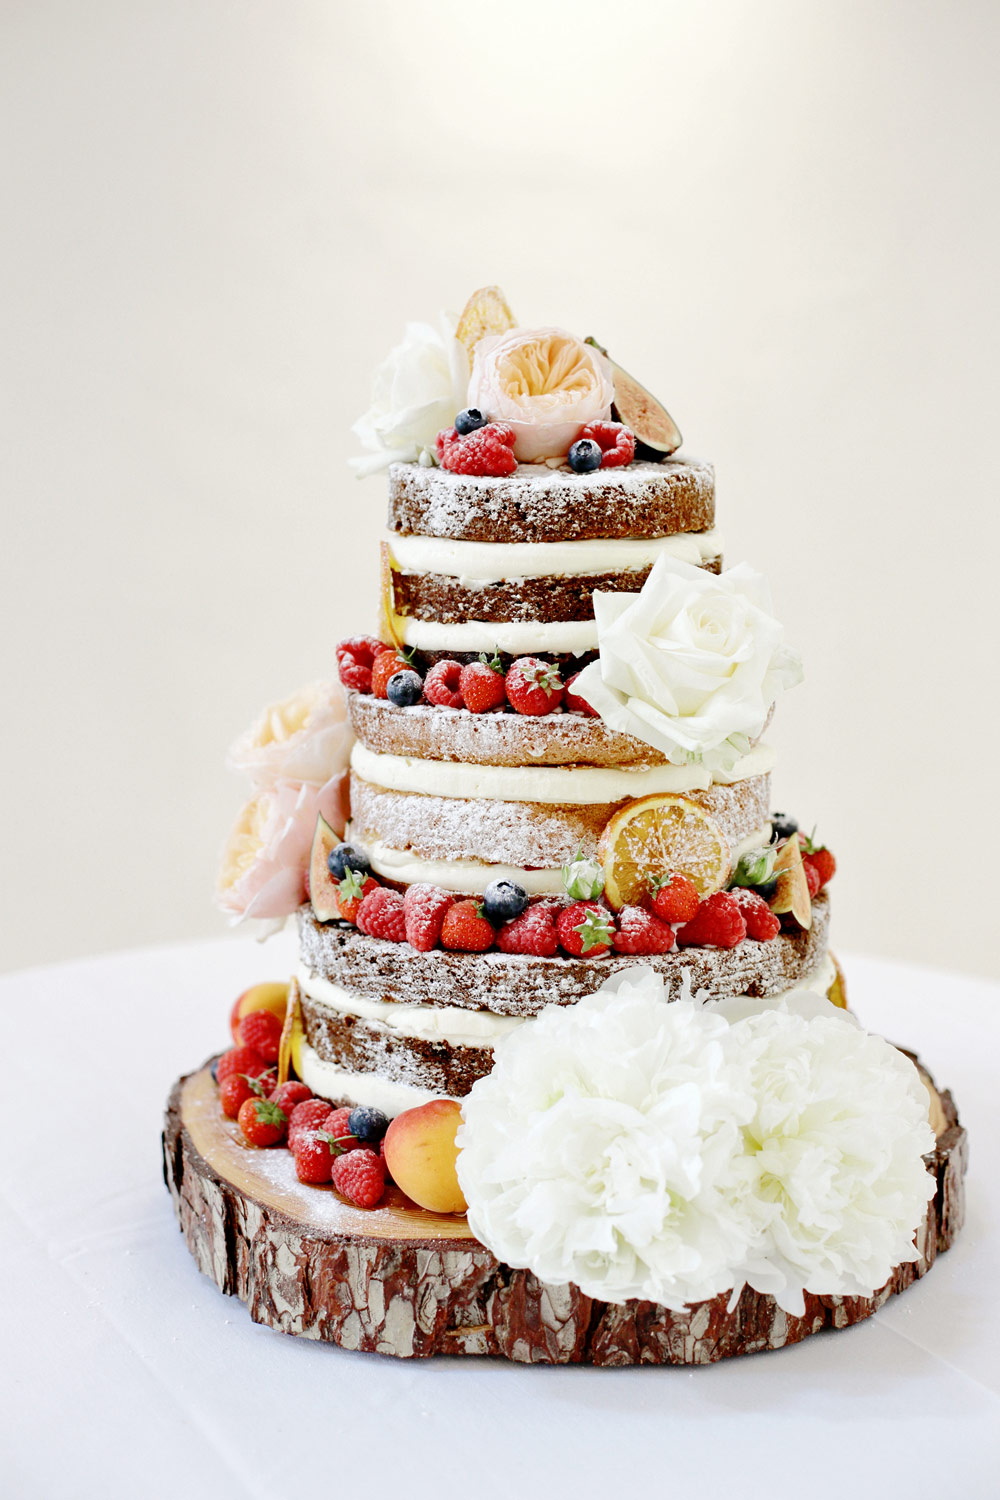 millbridge court naked wedding cake photo